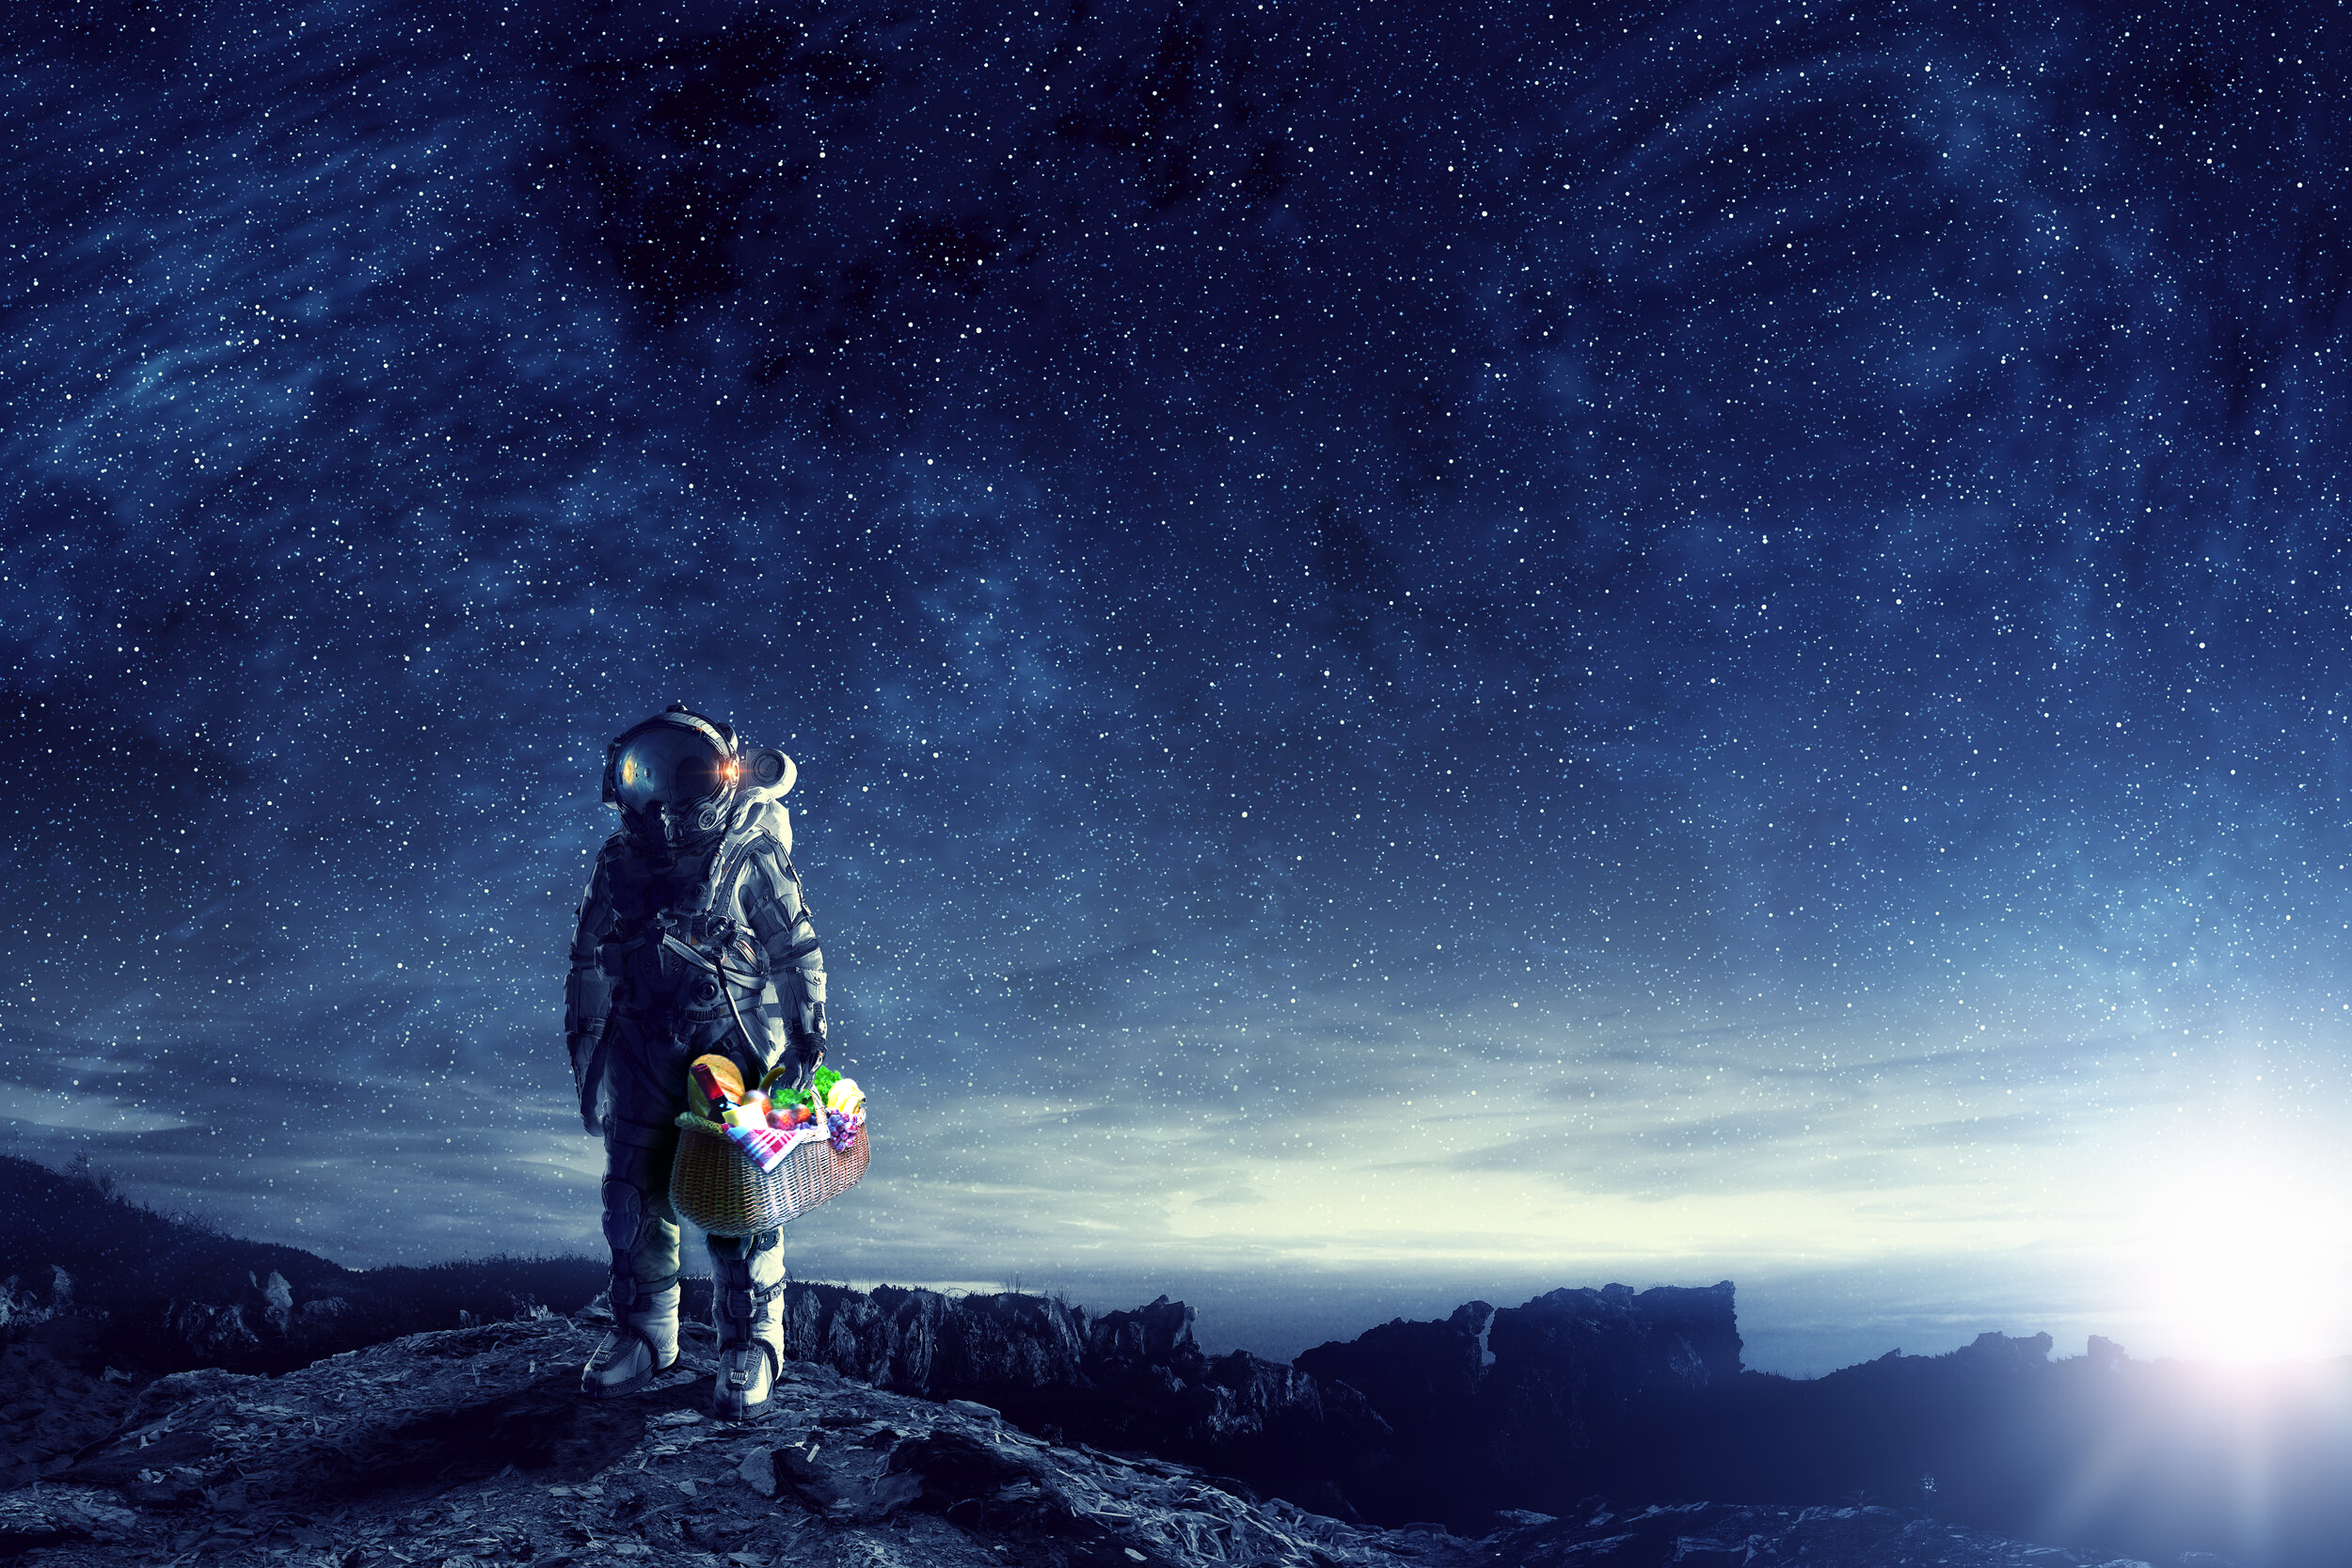 An illustration of an astronaut carrying a picnic basket on a barren planetary landscape with a sky full of stars.